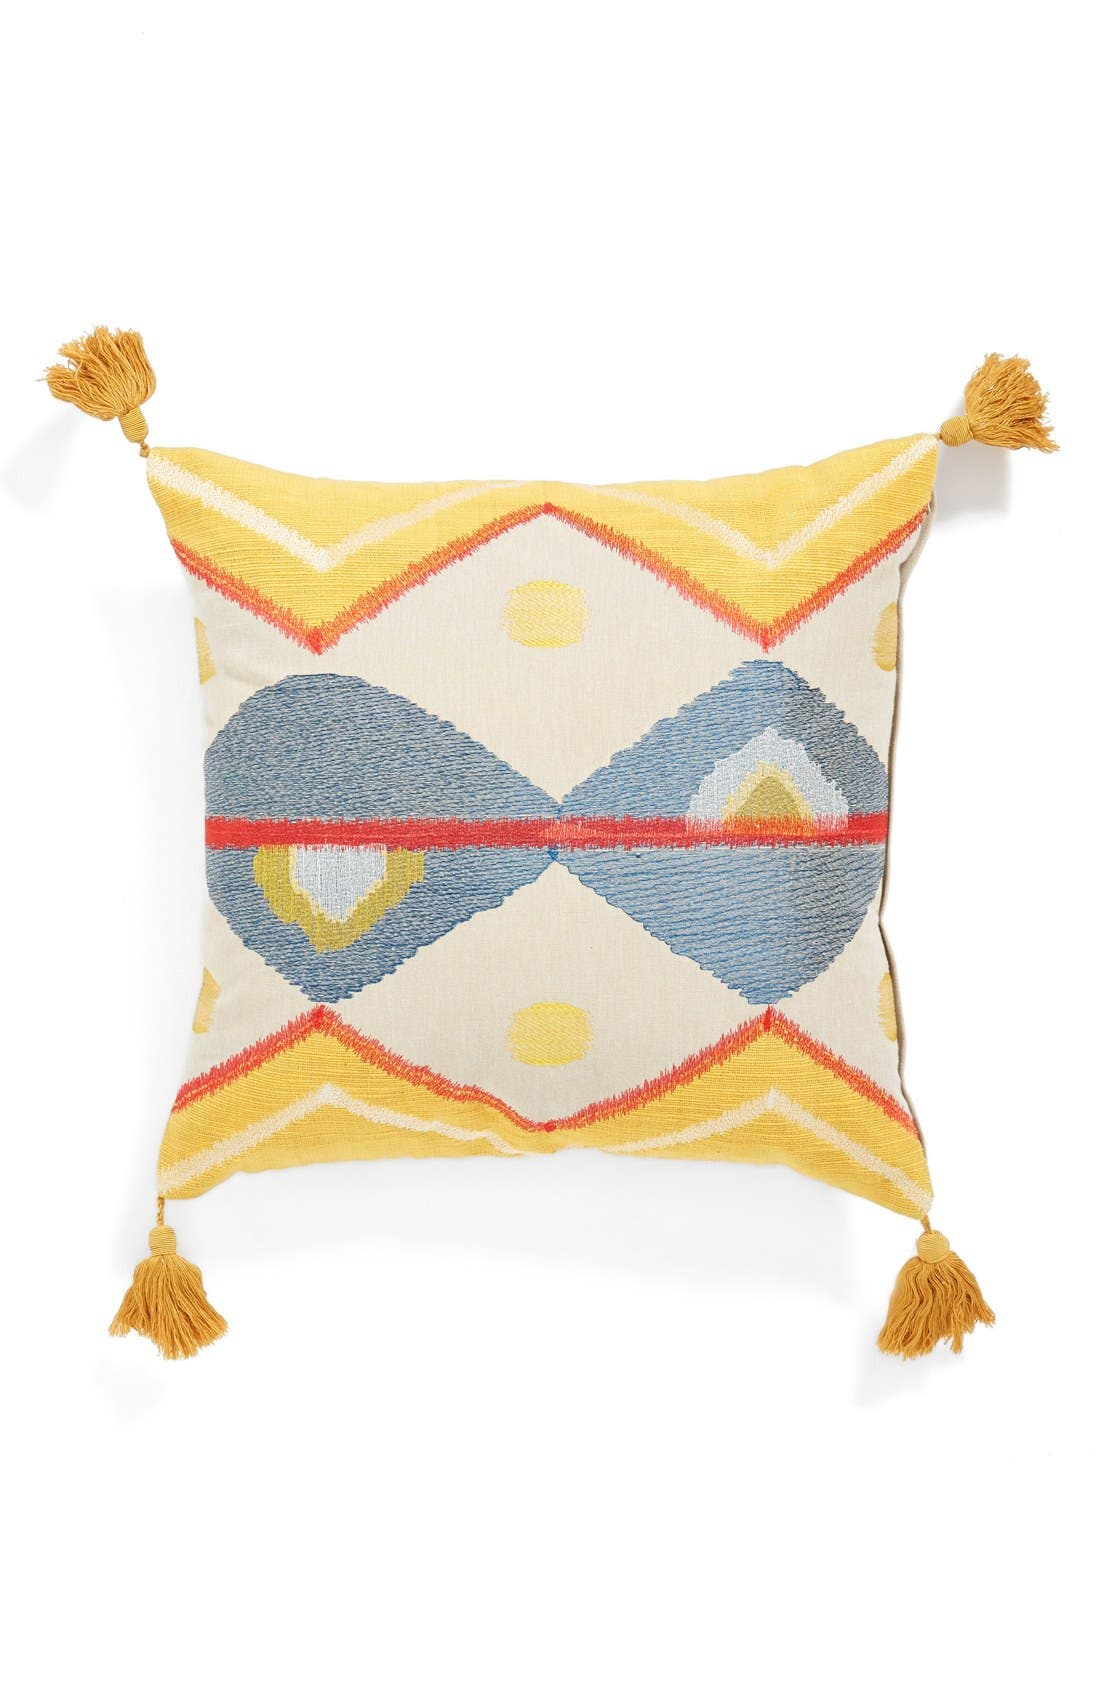 Alternate Image 1 Selected - Loloi Embroidered Tassel Pillow